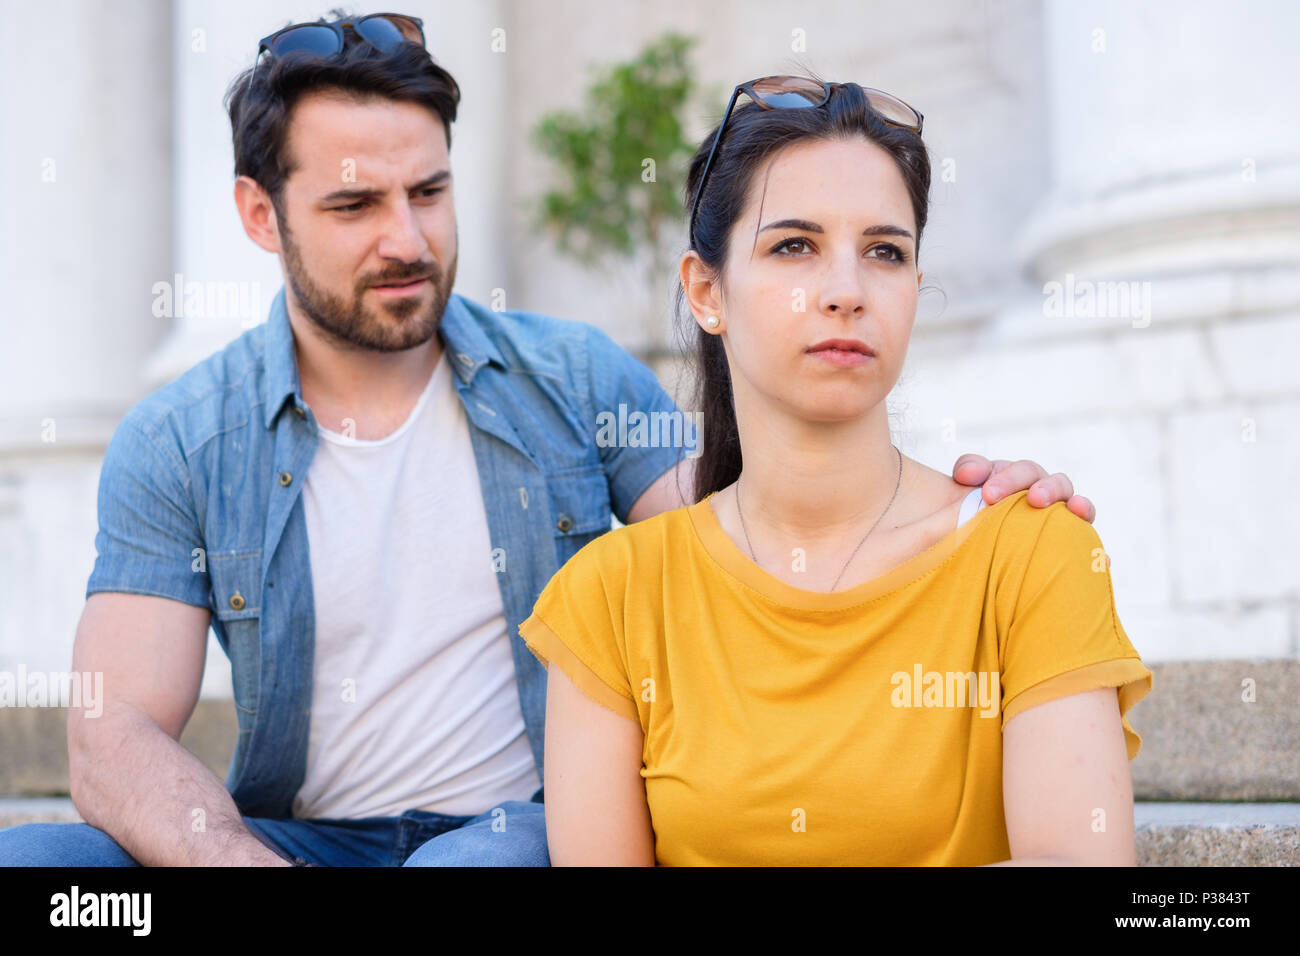 Man apologizing to his girlfriend after arguing.Relationships difficulties - Stock Image